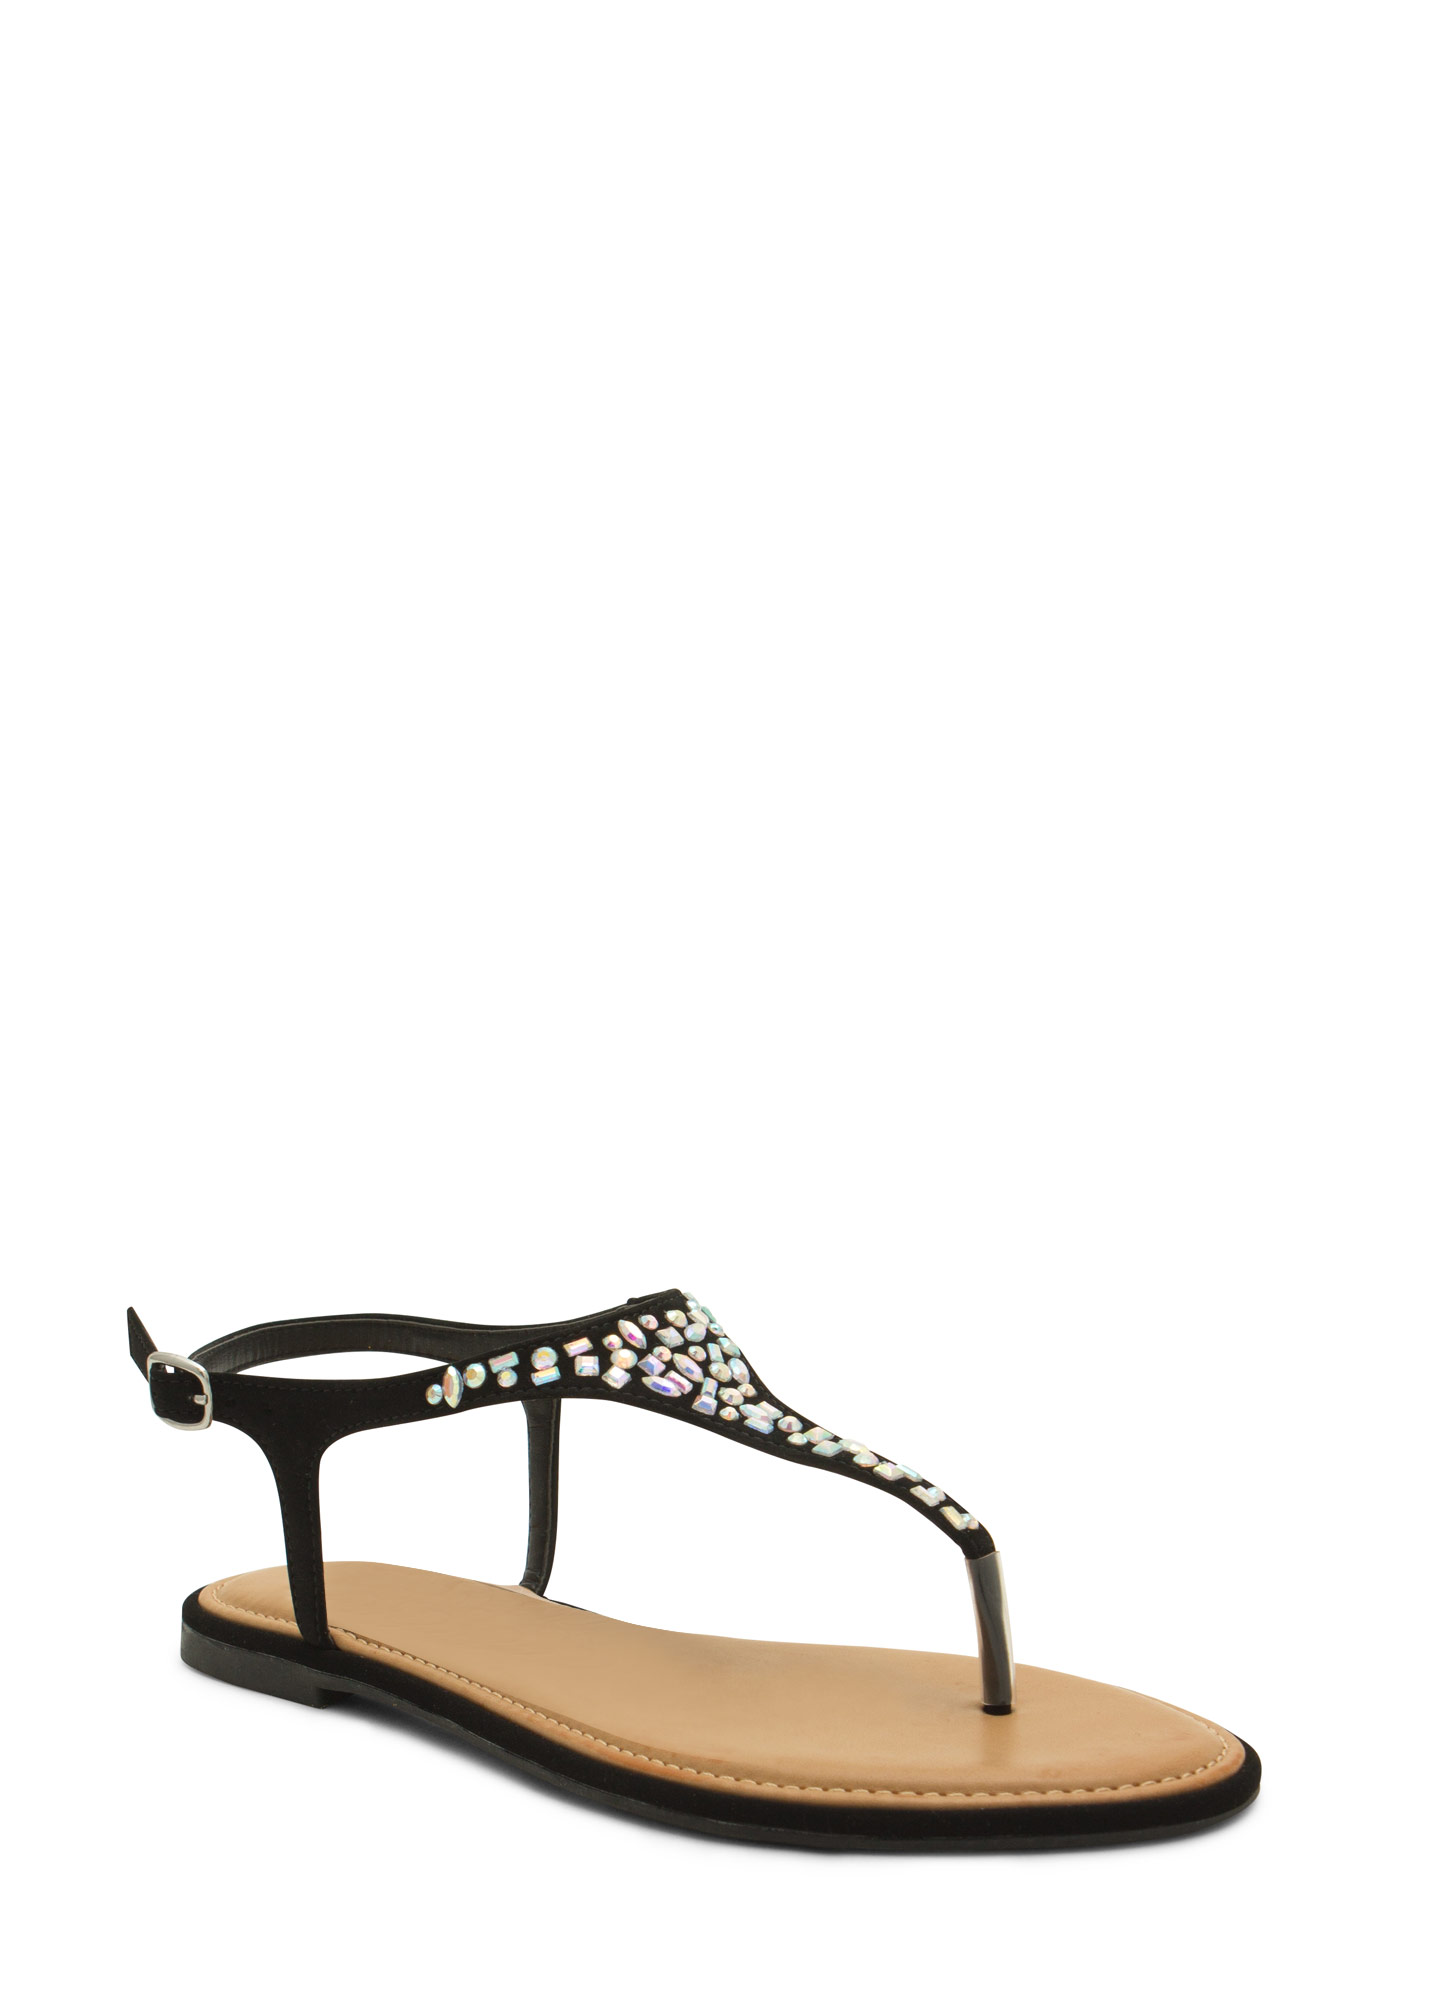 Embellished Tapered T-Strap Sandals BLACK